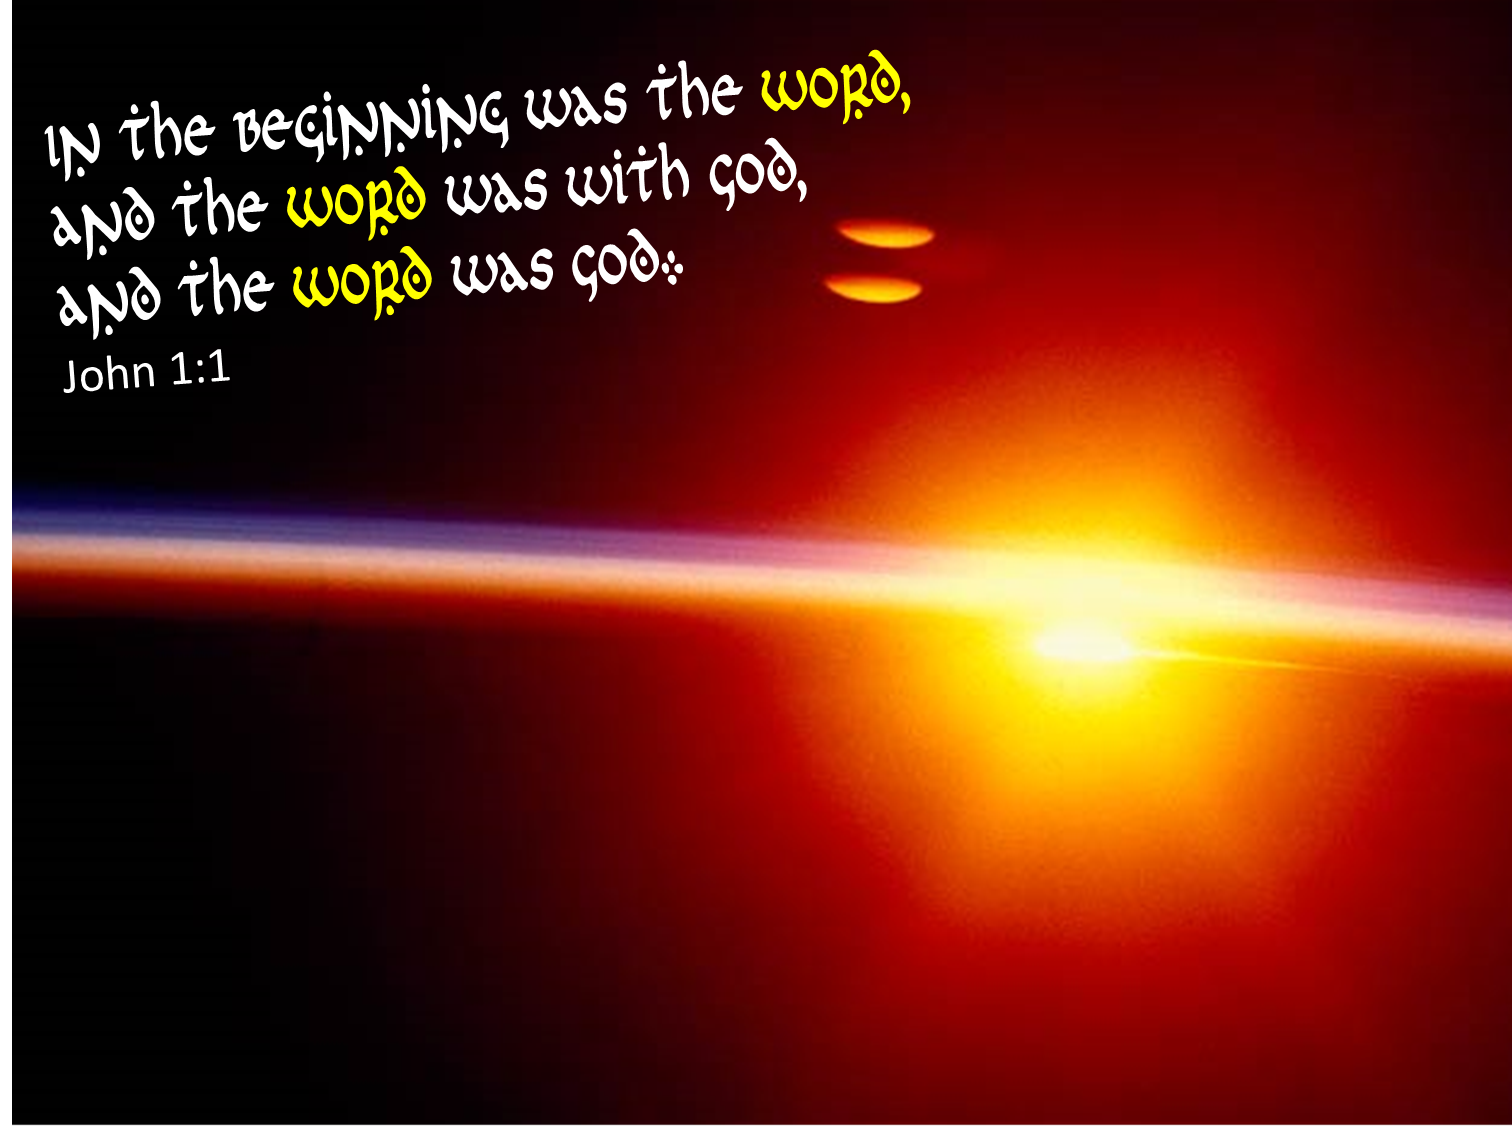 How Do You Start The Story And What Does That Say From Eternity To Here Part 1 John 1 1 18